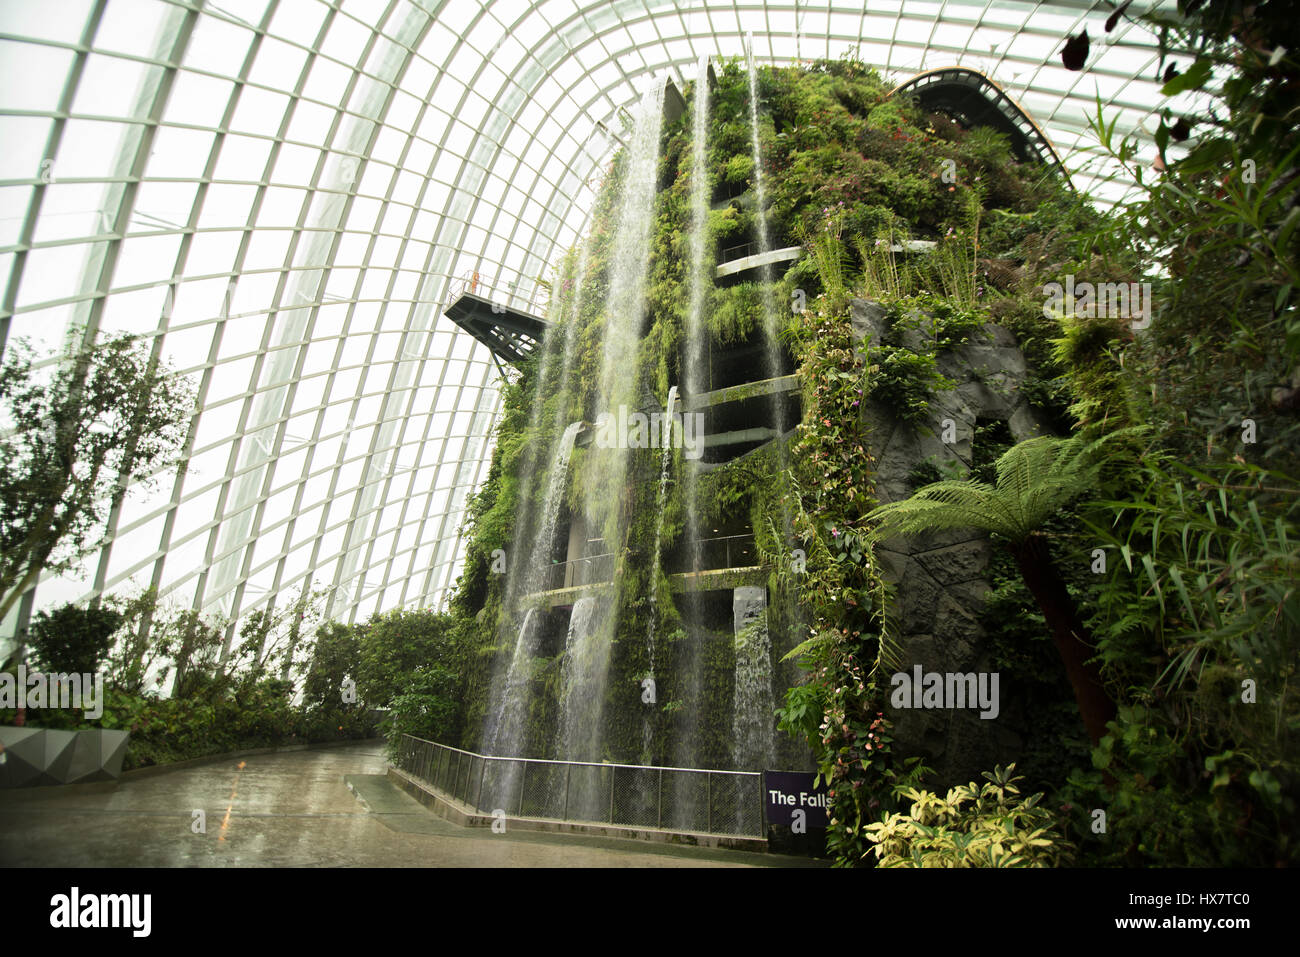 garden by the bay, flower dome, Singapore - Stock Image